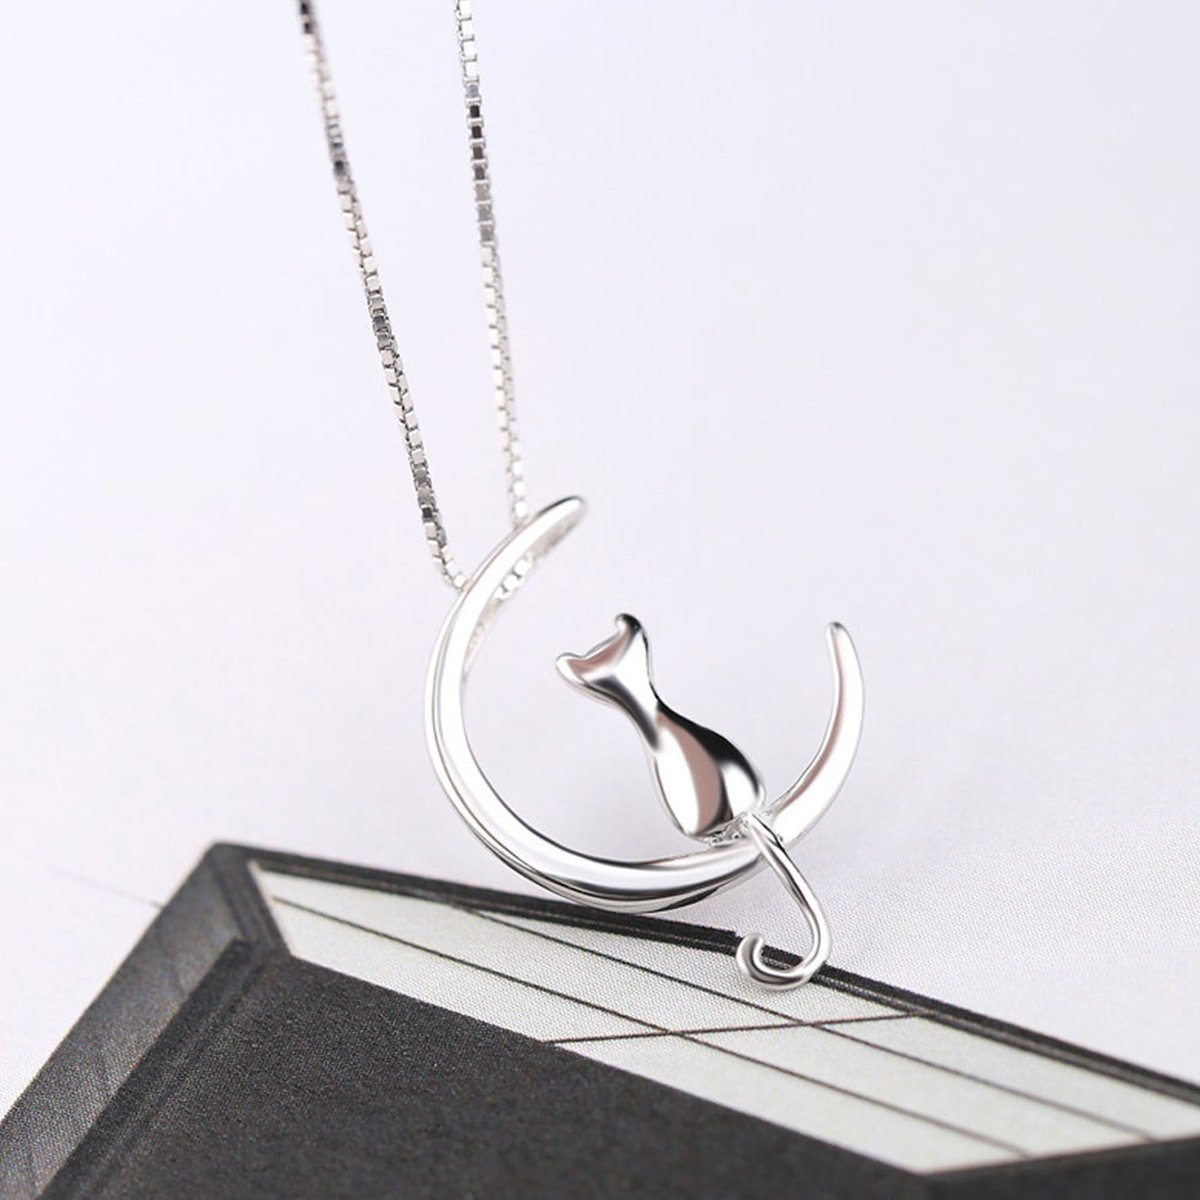 The Stylopedia necklace Cat Moon Pendant Necklace